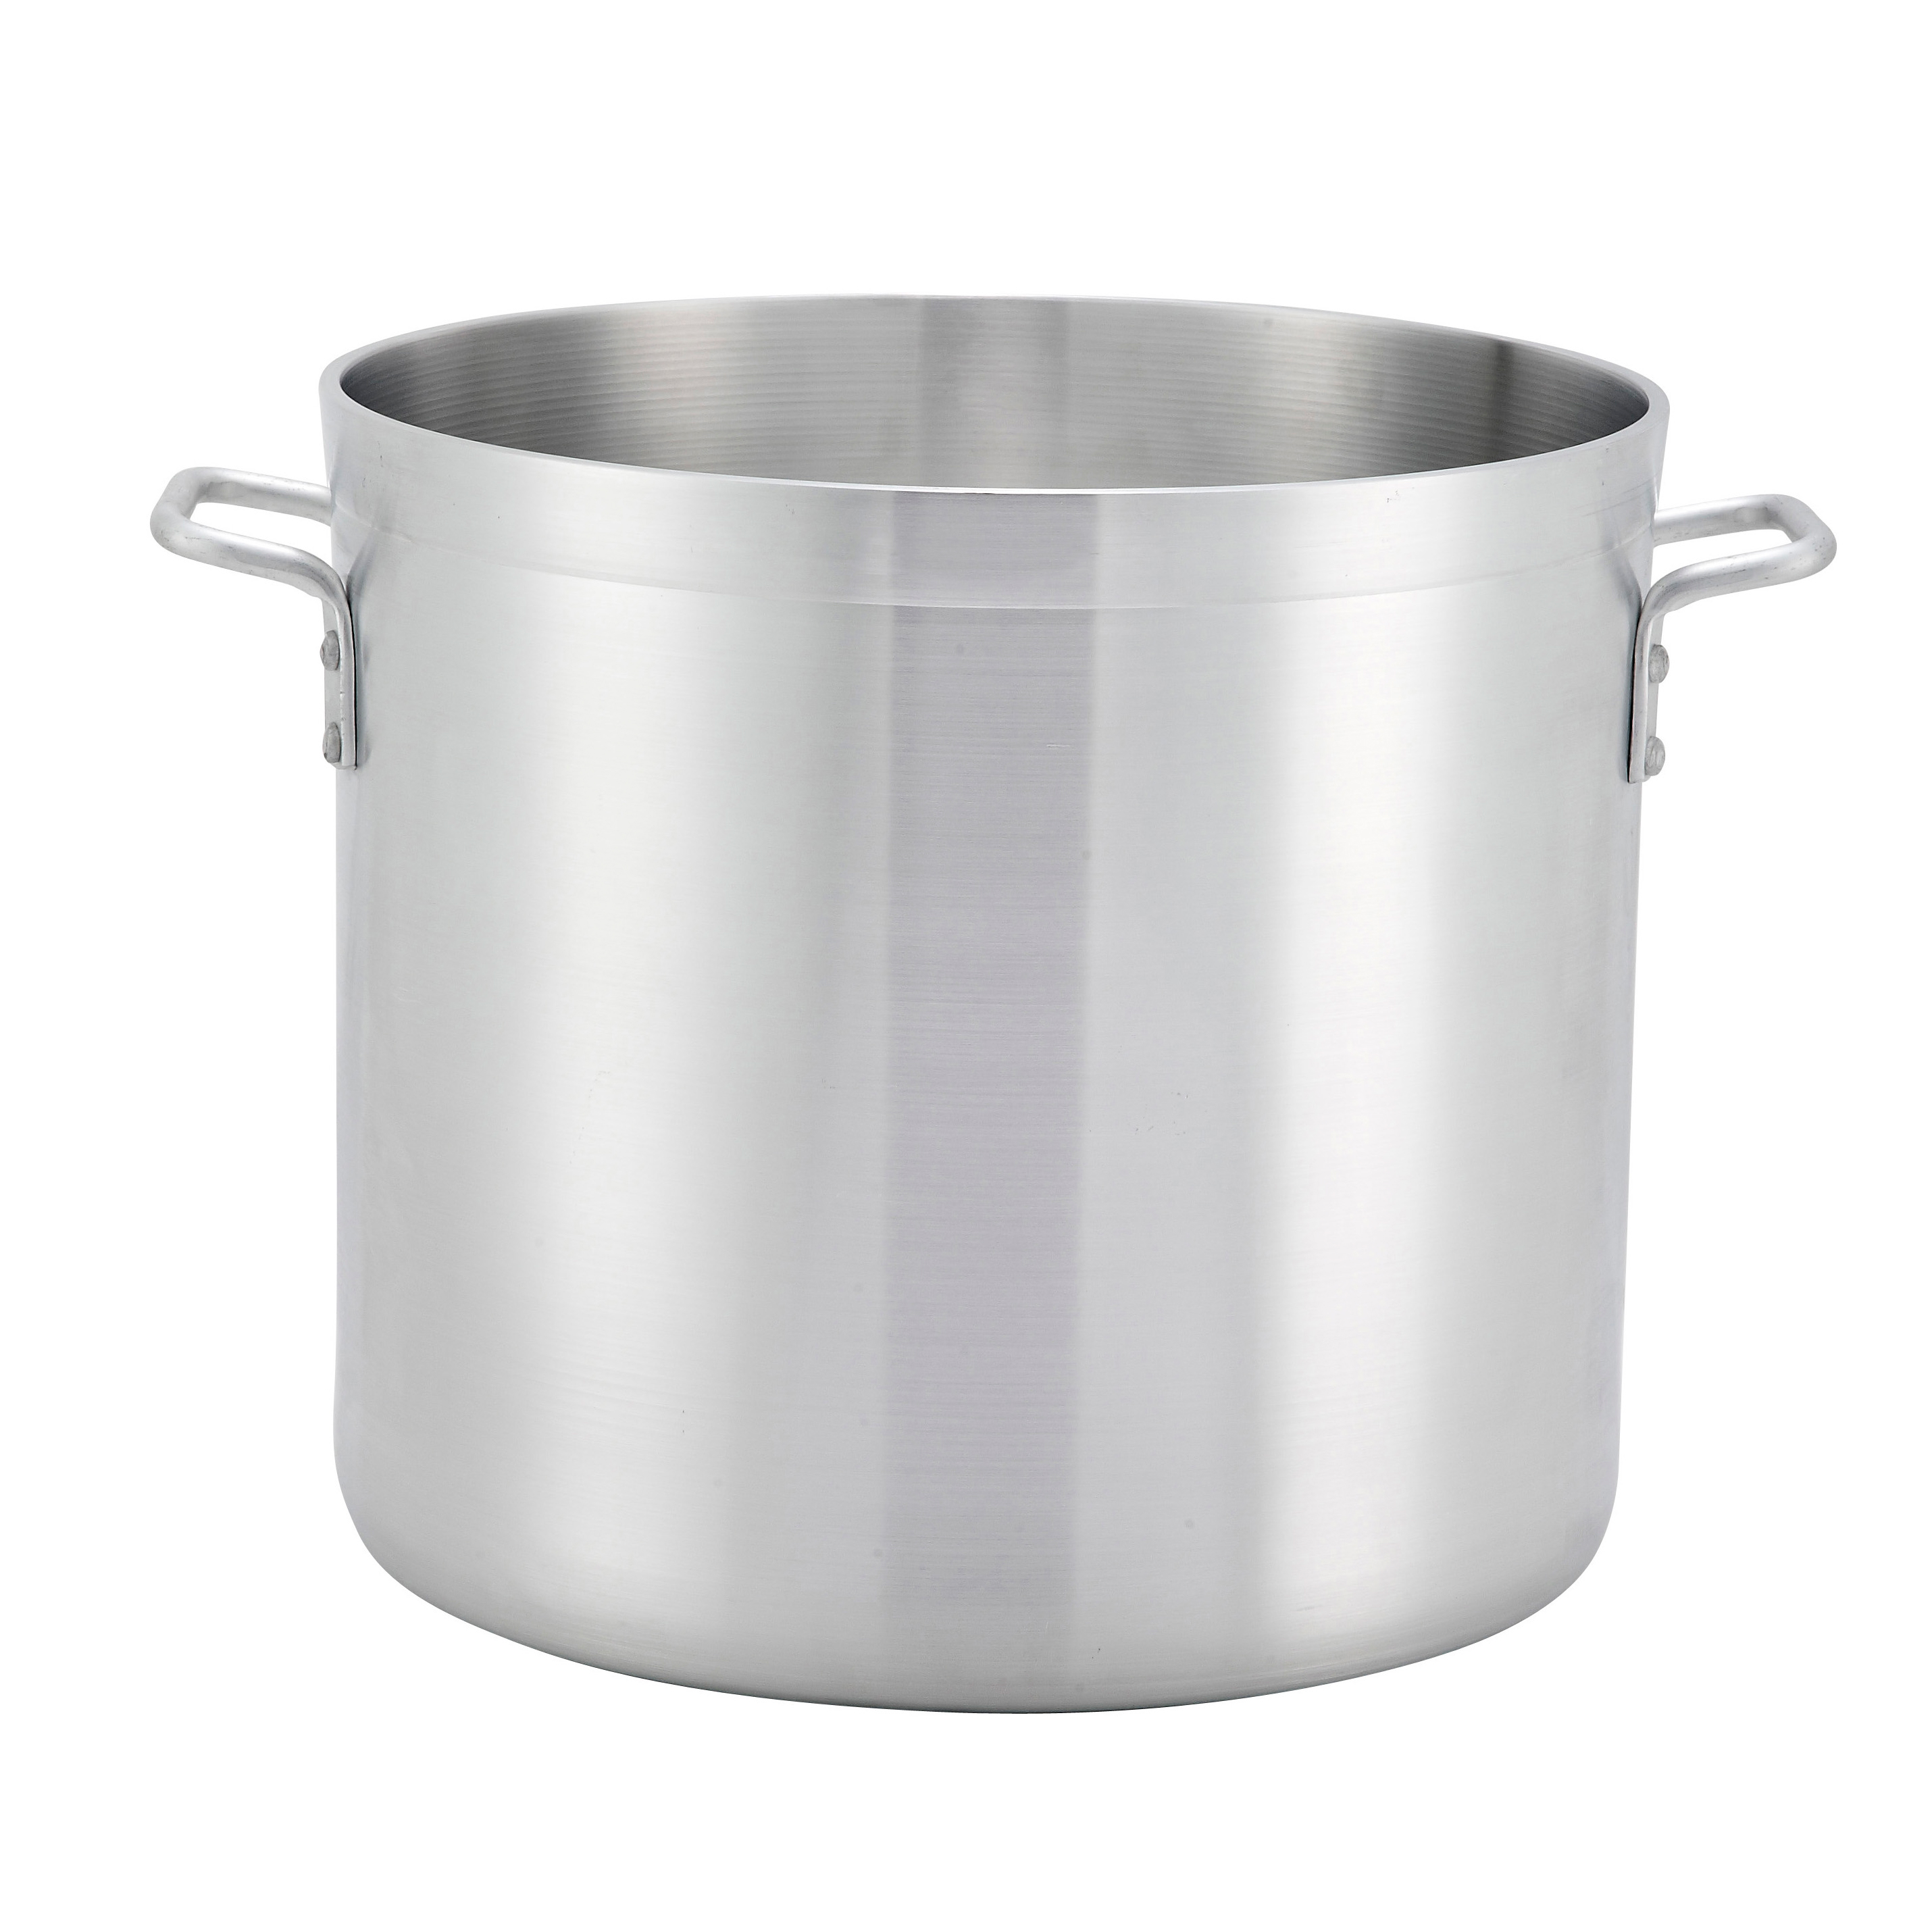 Winco ALHP-120 stock pot